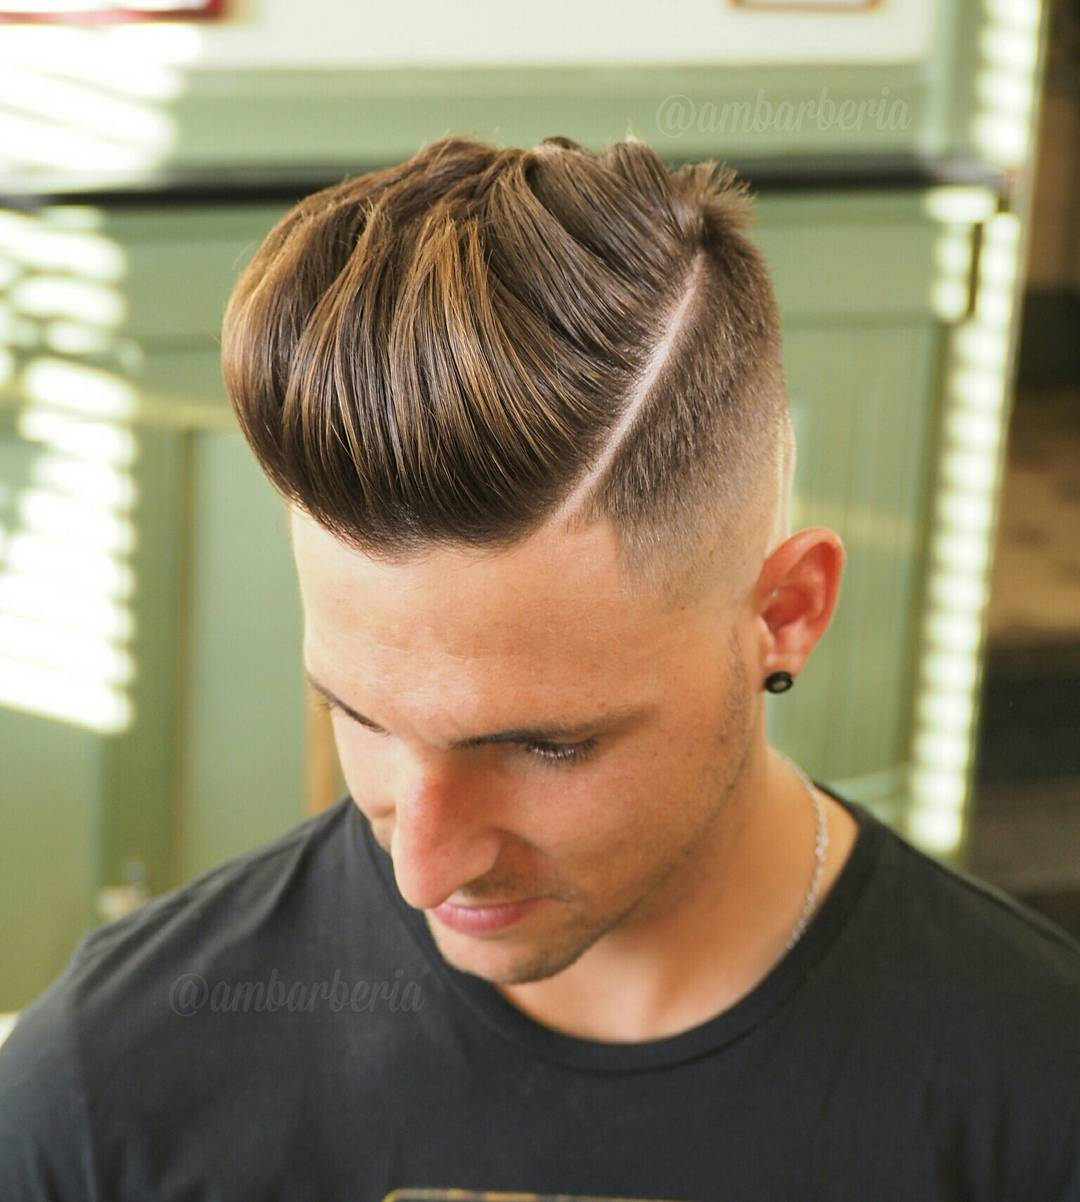 Ambarberia Pompadour Hard Part High Fade Haircut For